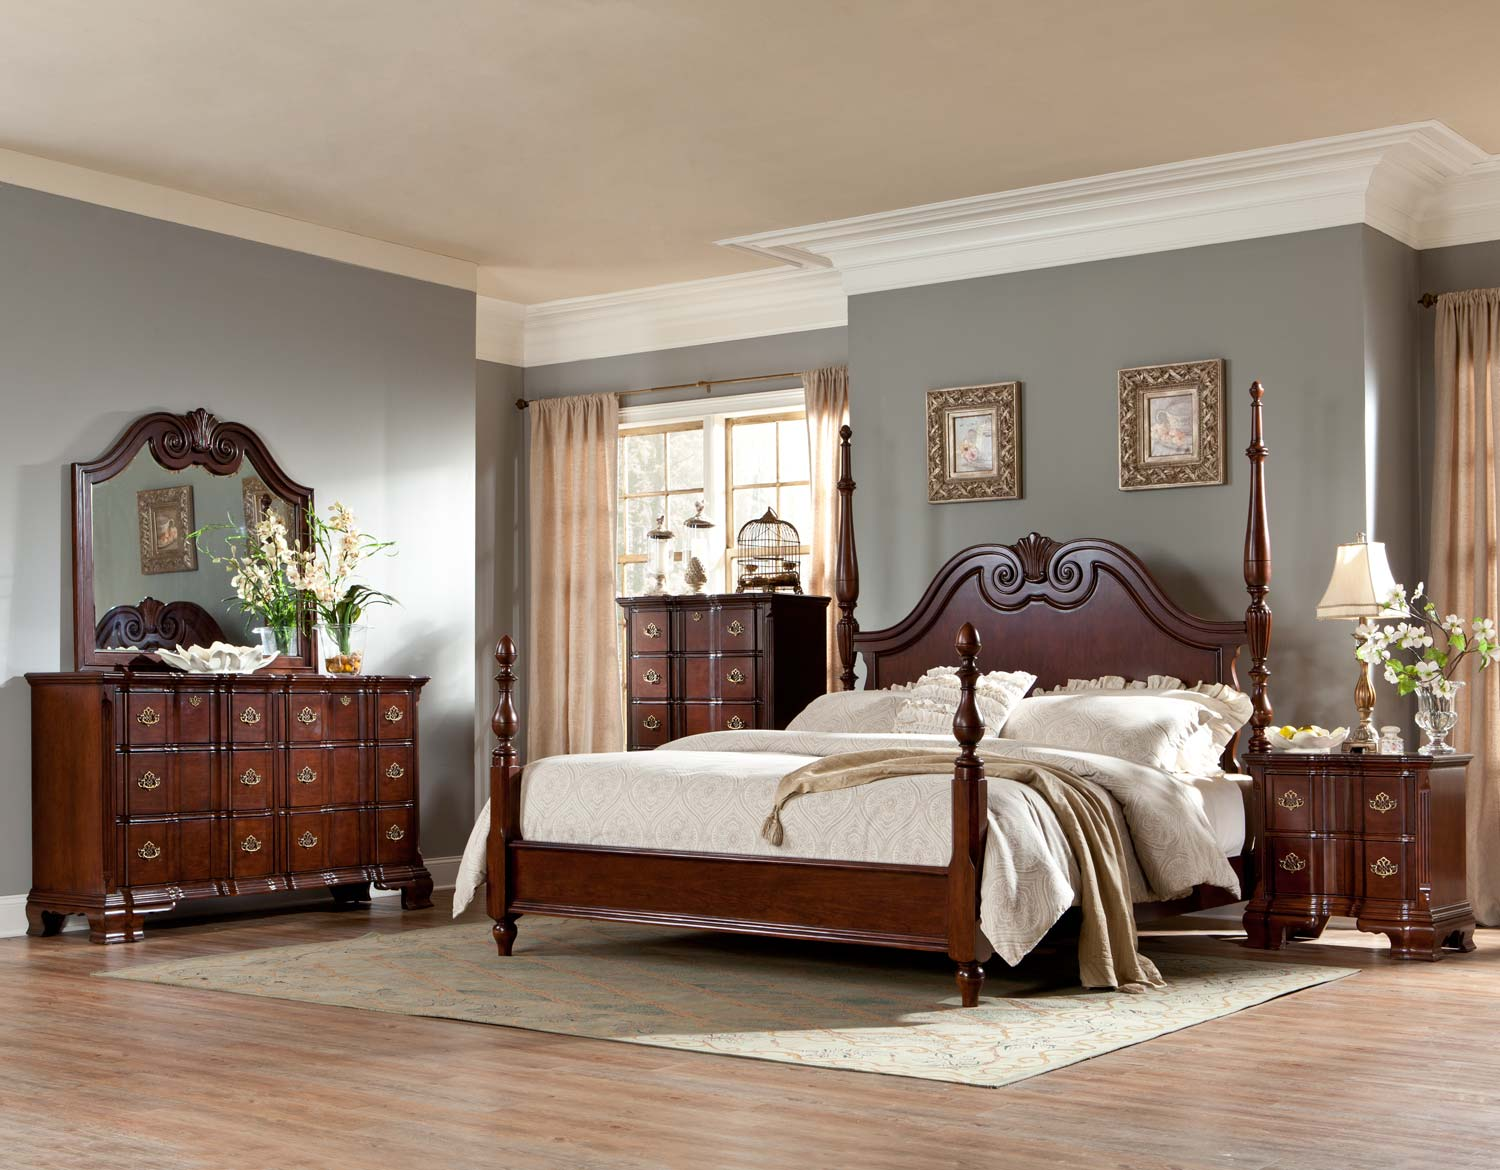 homelegance guilford poster bedroom set brown cherry b2155 1sp bed set. Black Bedroom Furniture Sets. Home Design Ideas